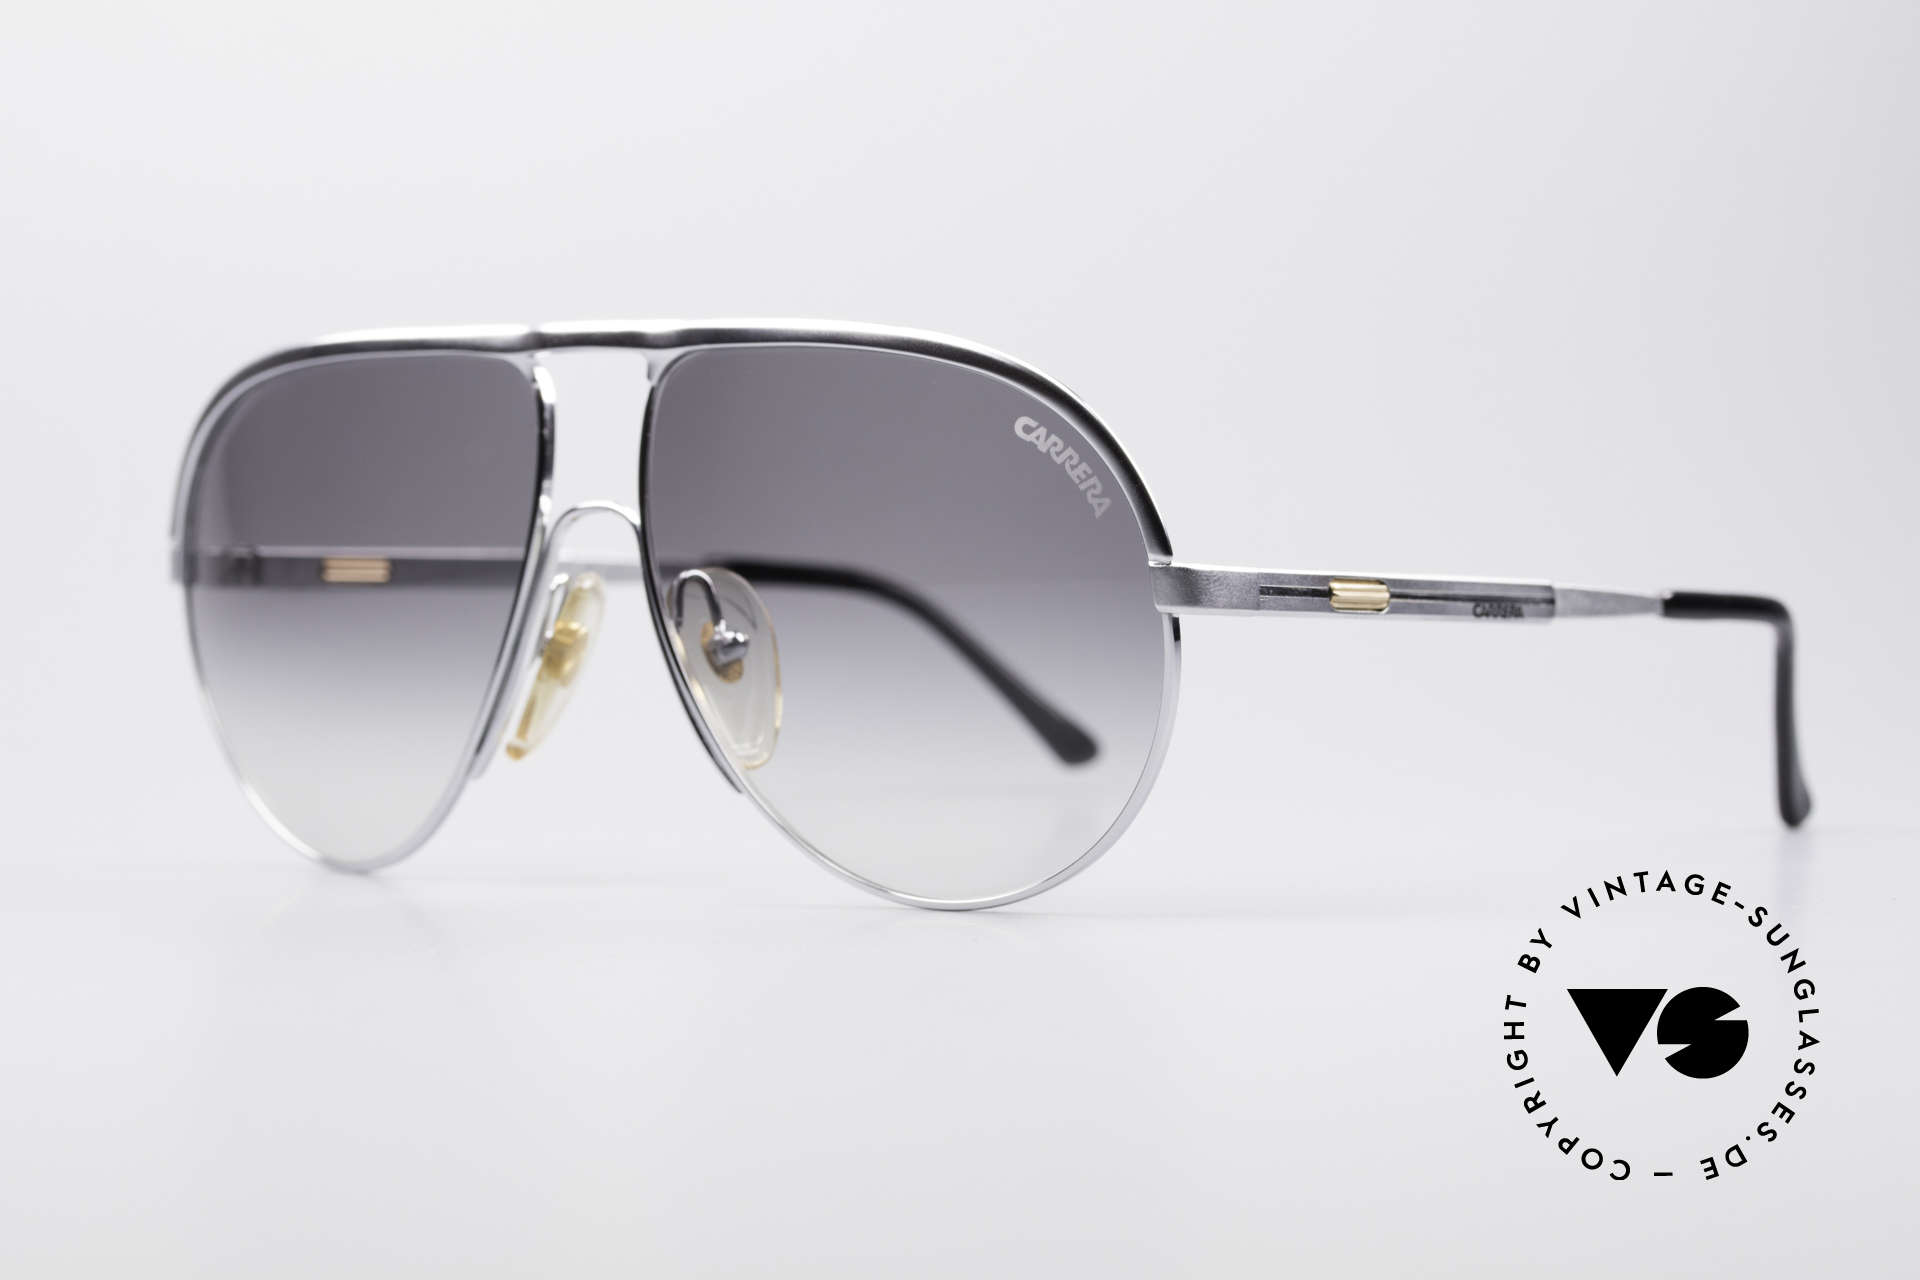 Carrera 5305 Adjustable Sunglasses, variable temple length, due to Carrera VARIO SYSTEM, Made for Men